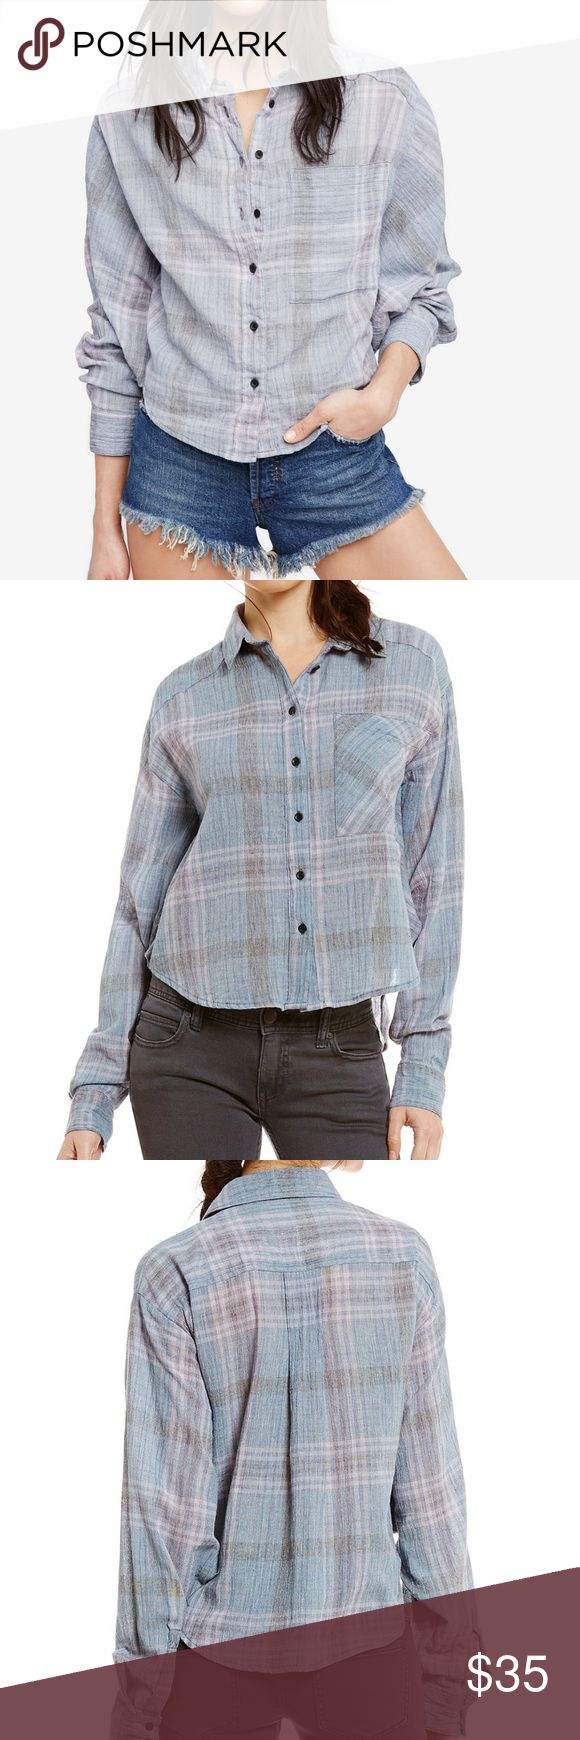 Cotton Cropped Cutie Plaid Button Down Batwing Top Free People's tomboy-inspired shirt gets a chic upgrade with this cool essential. The relaxed boyfriend styling of this plaid piece is slightly cropped so it rests at the high hip with feminine flair.          Designed for a relaxed fit         Point collar, long sleeves, button cuffs         Front button down closure, patch pocket at left chest         Cropped, rounded hem, crinkle texture, plaid pattern         Cotton; trim…